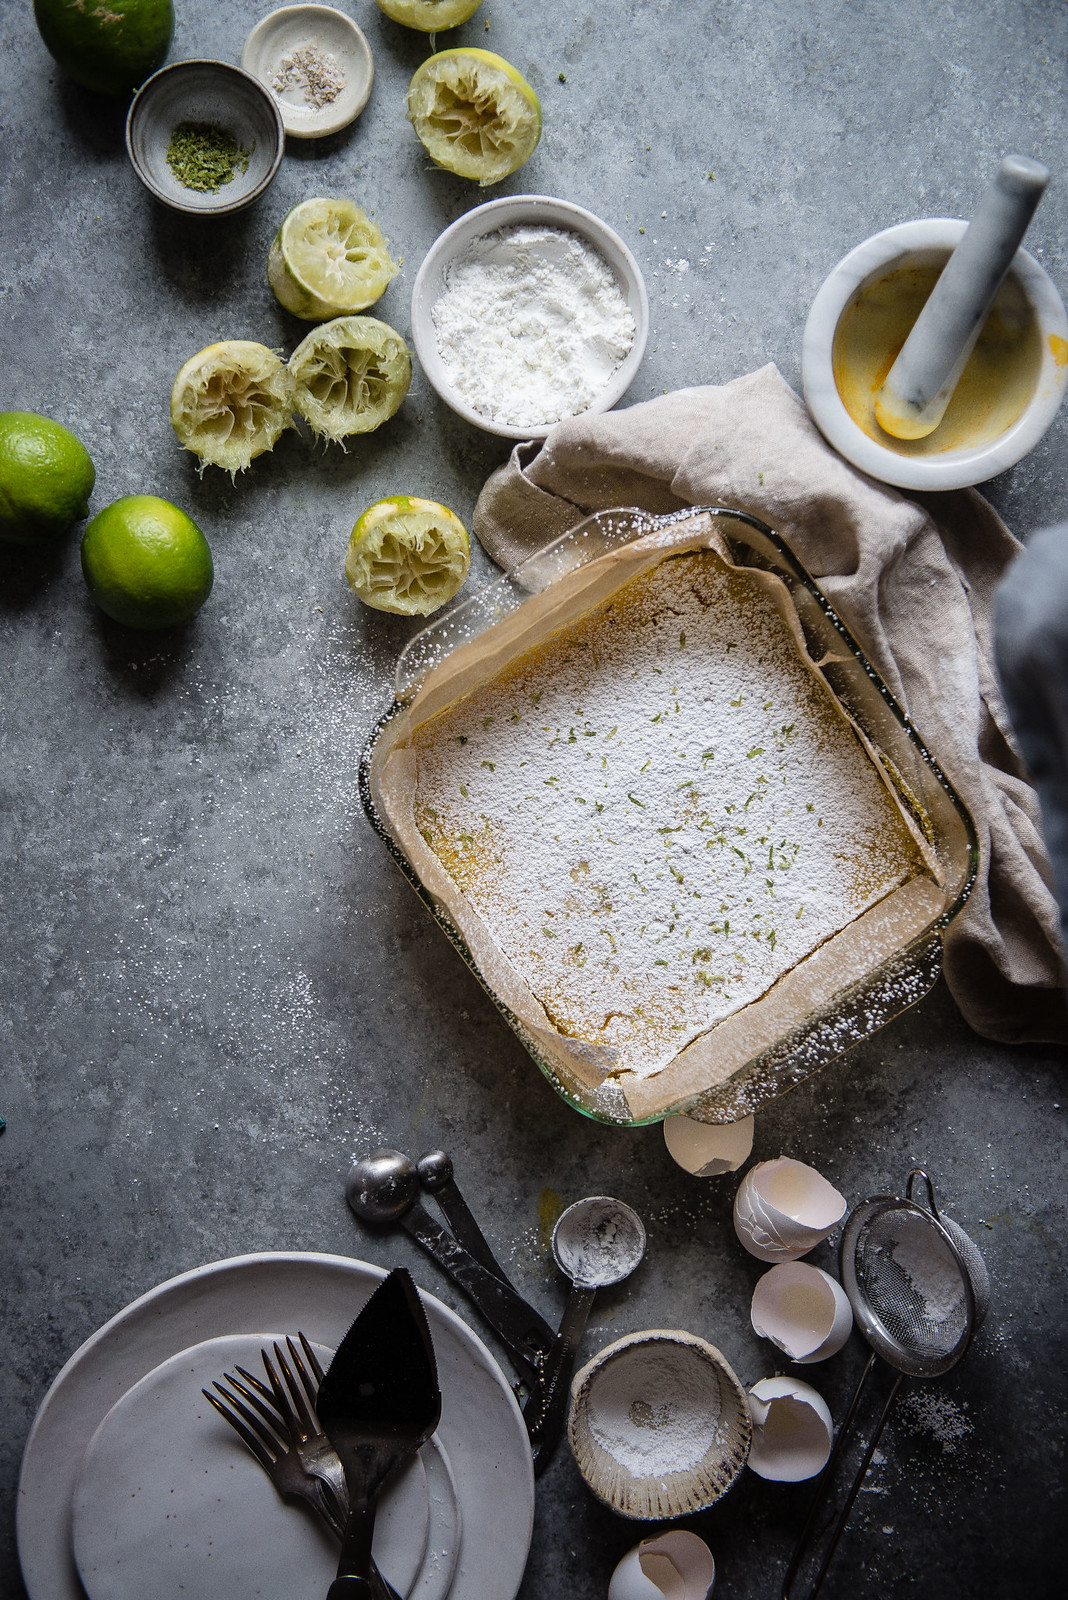 lime bars with saffron from #sweeteroffthevine